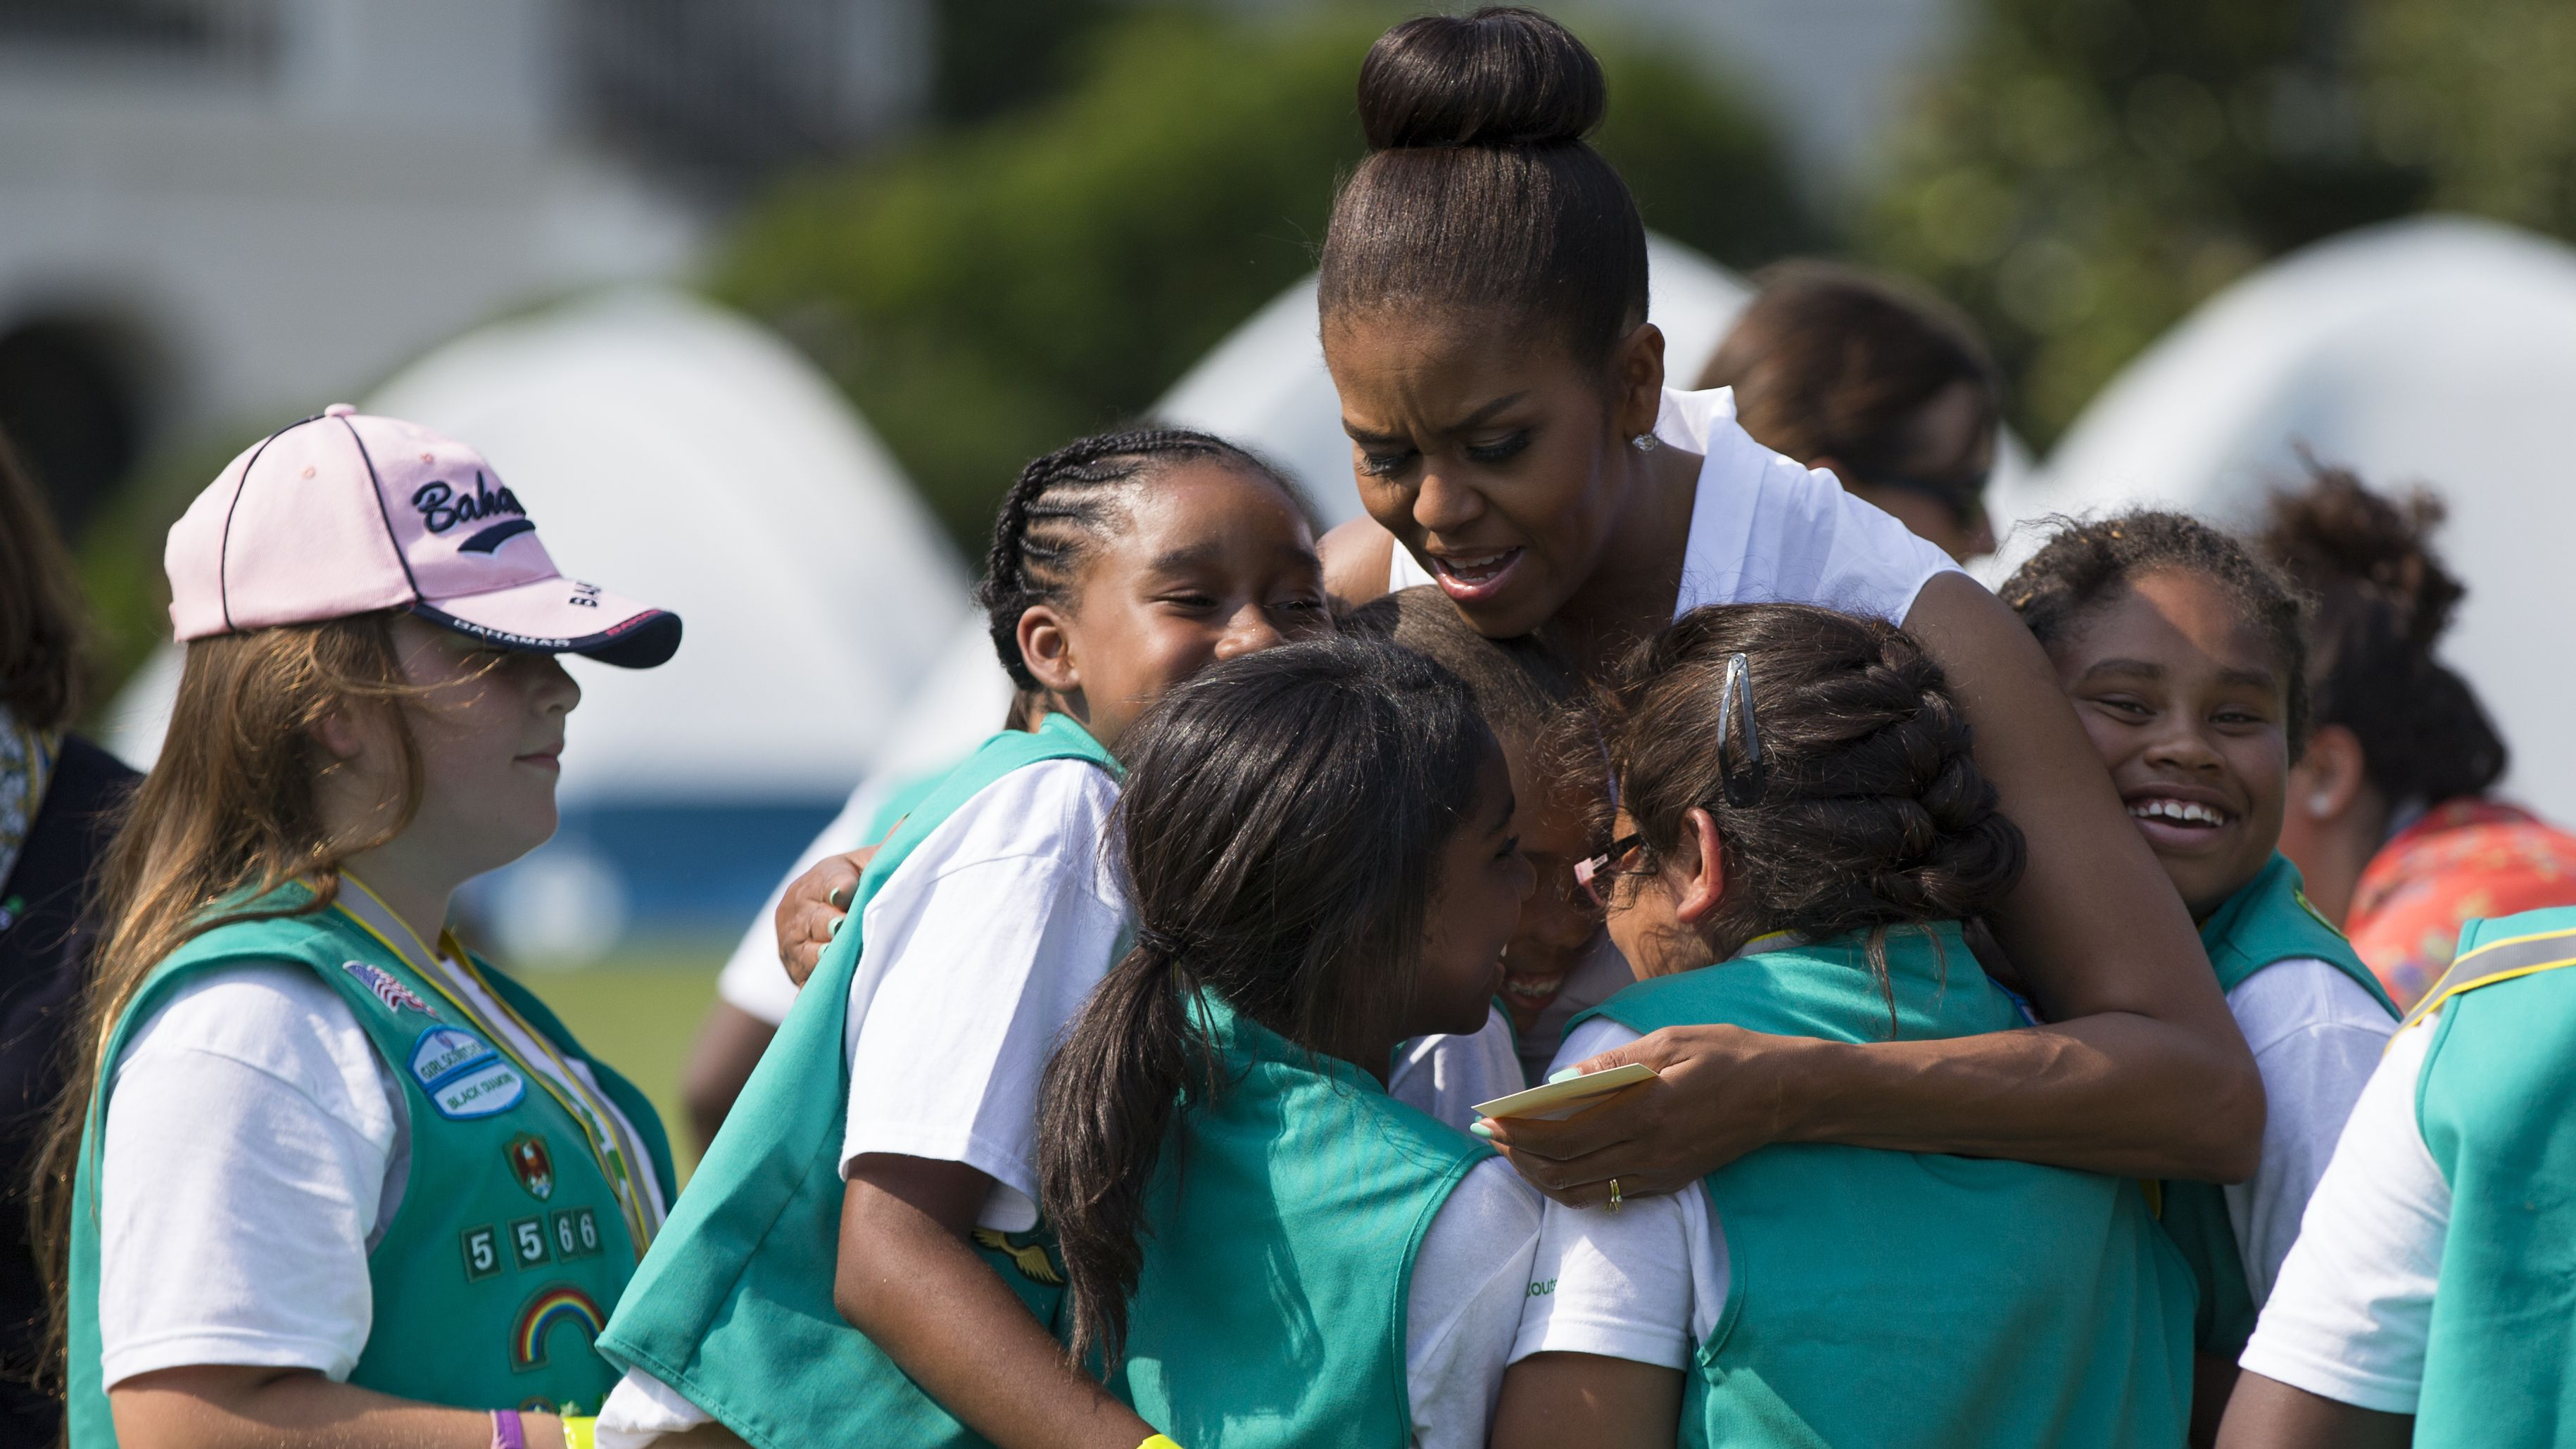 First lady Michelle Obama hugs a group of Girl Scouts during a Lets Move! event on the South Lawn of the White House, on Tuesday, June 30, 2015, in Washington. Fifty fourth-grade Girl Scouts from councils in Maryland, West Virginia, Virginia, the District of Columbia and Oklahoma have been invited to spend the night sleeping in tents pitched on the South Lawn. (AP Photo/Evan Vucci)